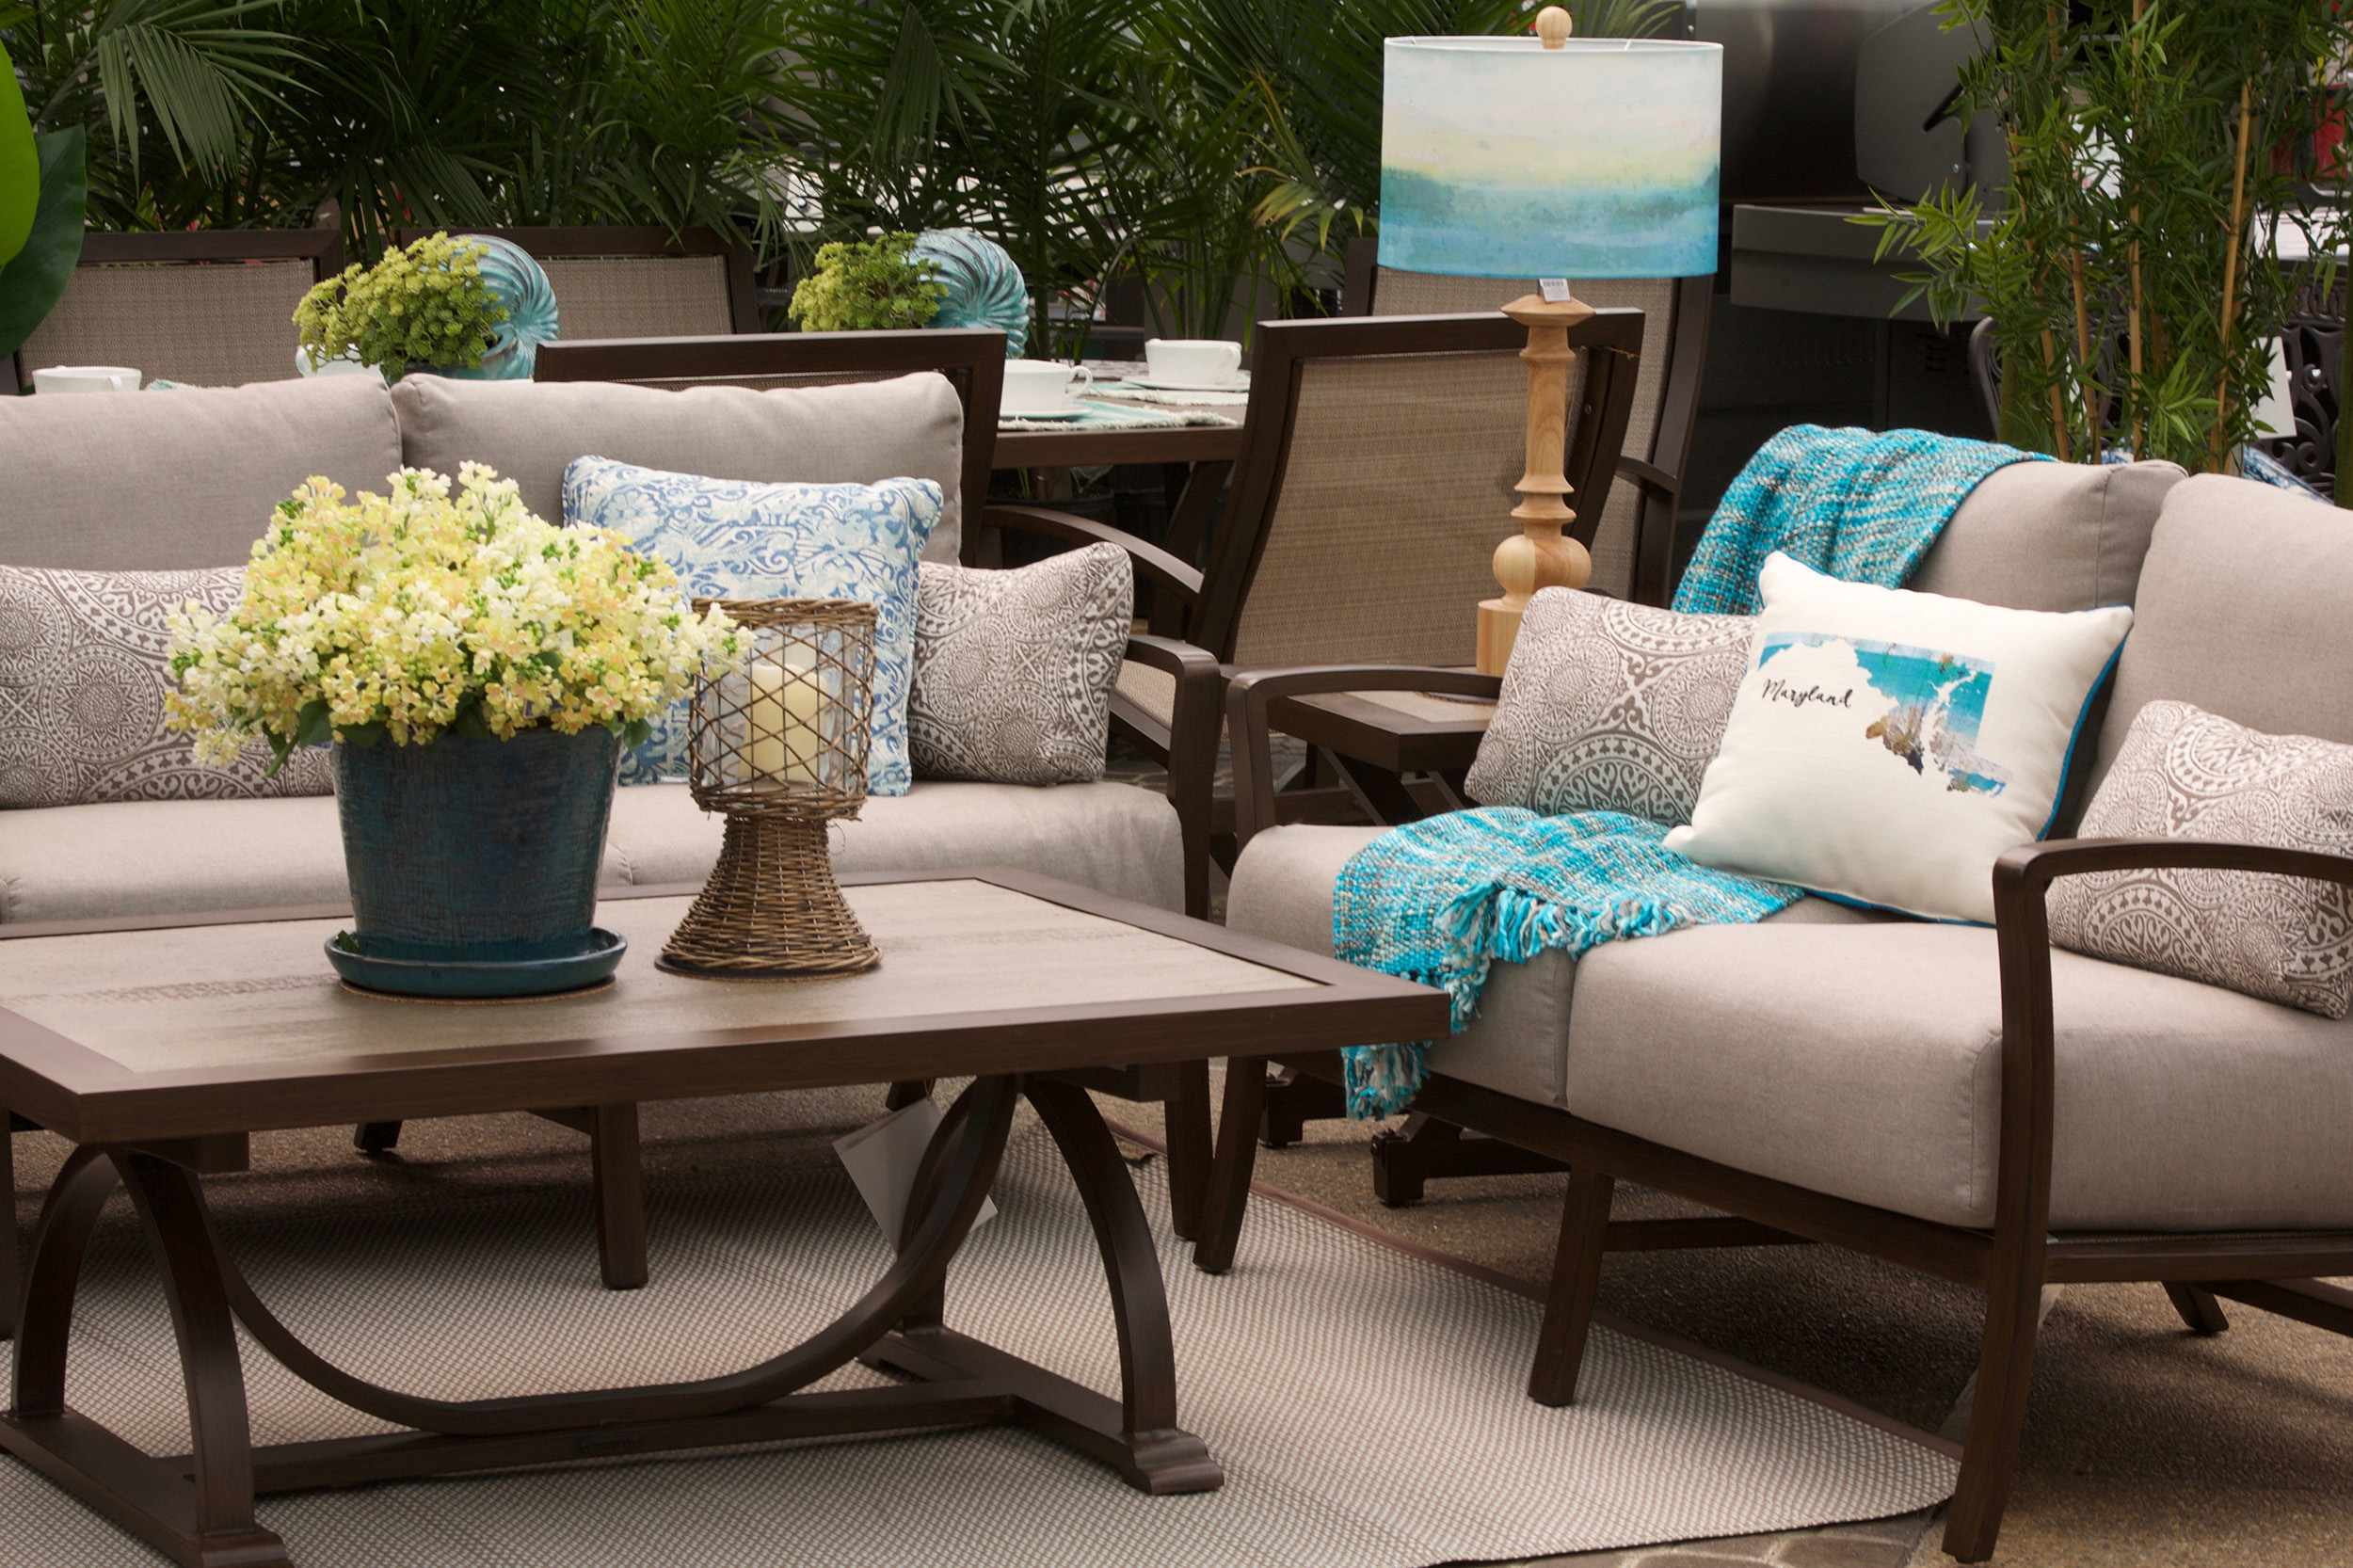 patio furniture plusu2026 custom special orders available! inquire in-store. AWPANZN